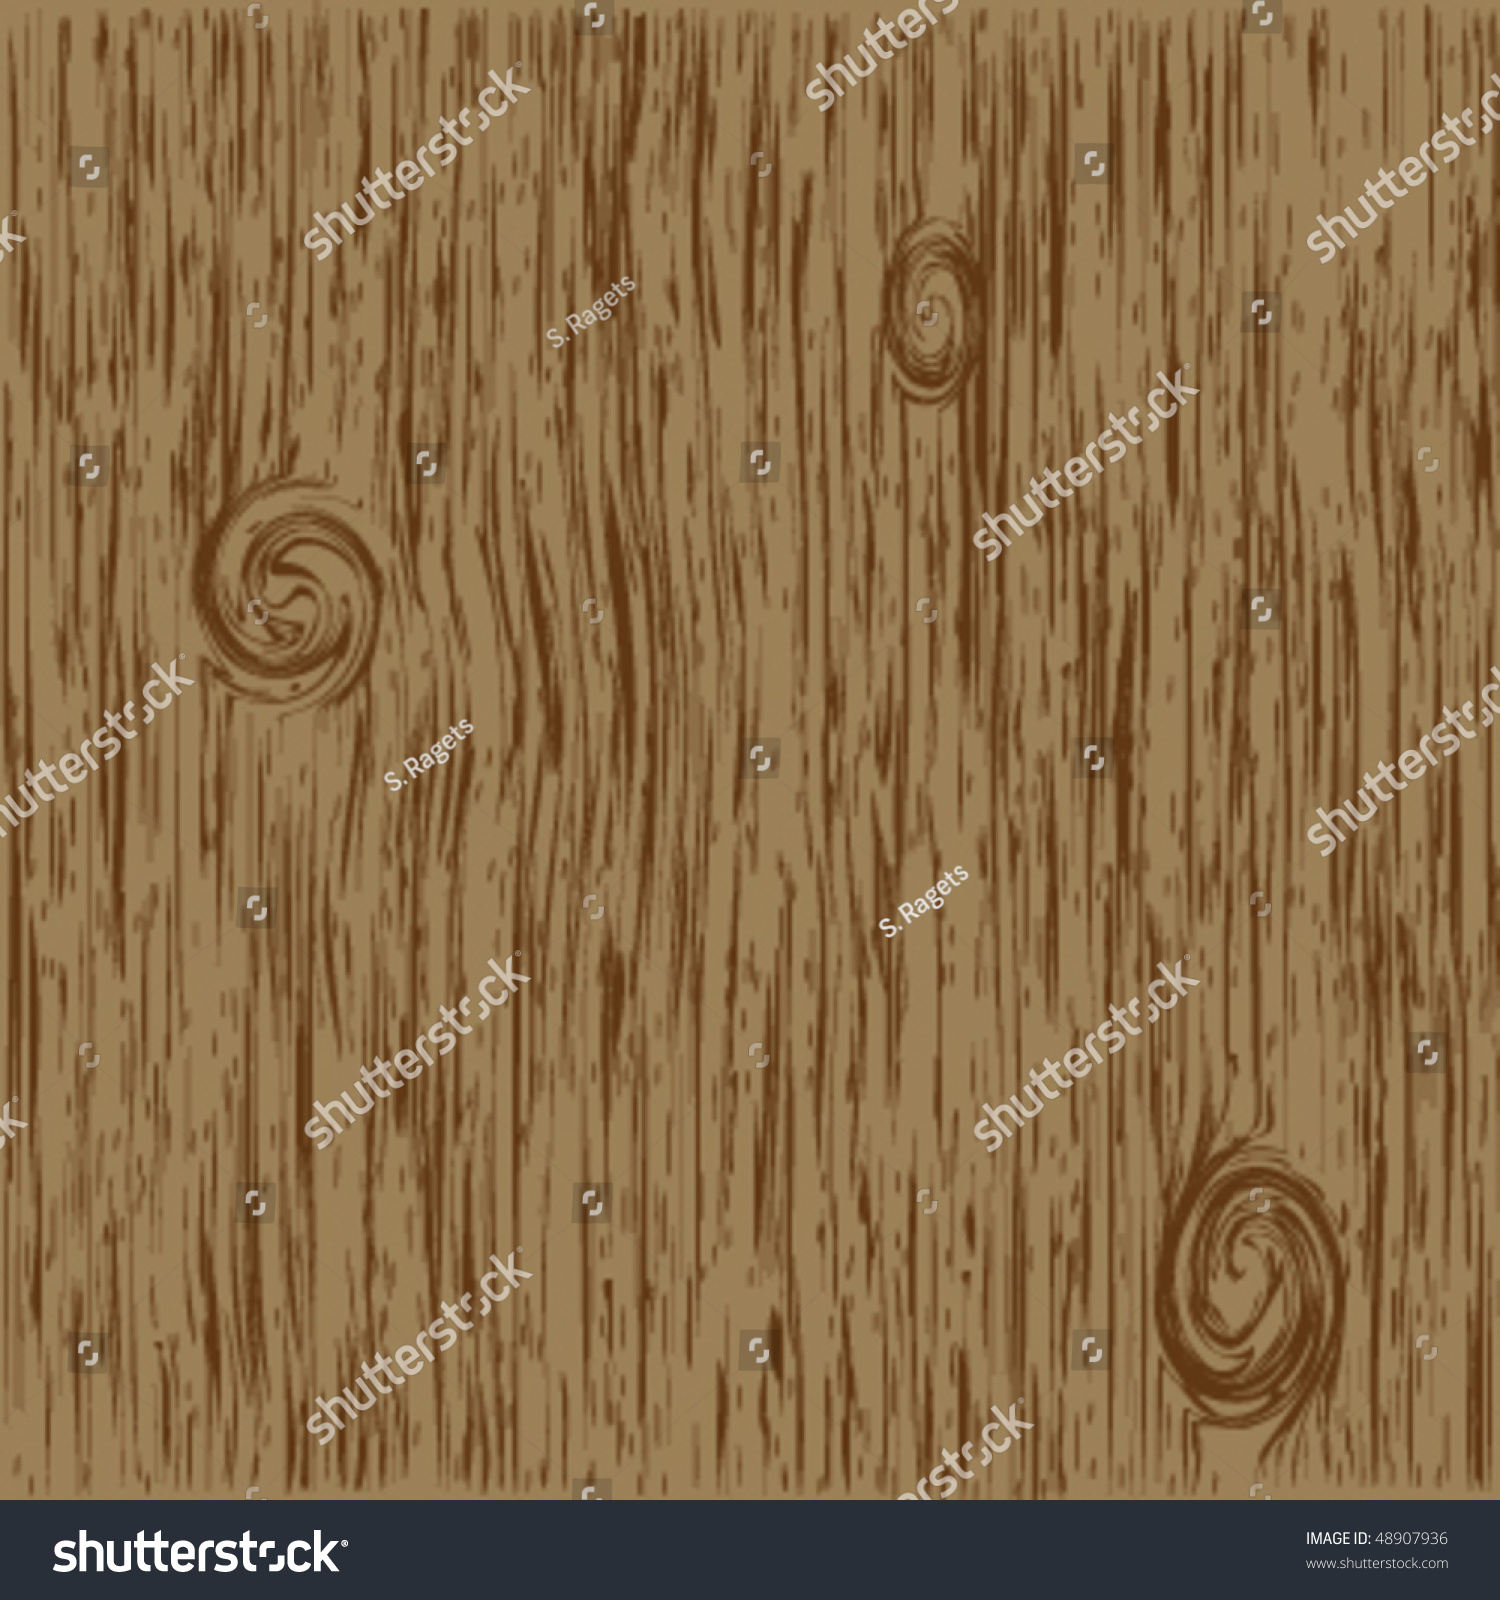 Dark Wood Grain Vector Stock Vector 48907936 - Shutterstock